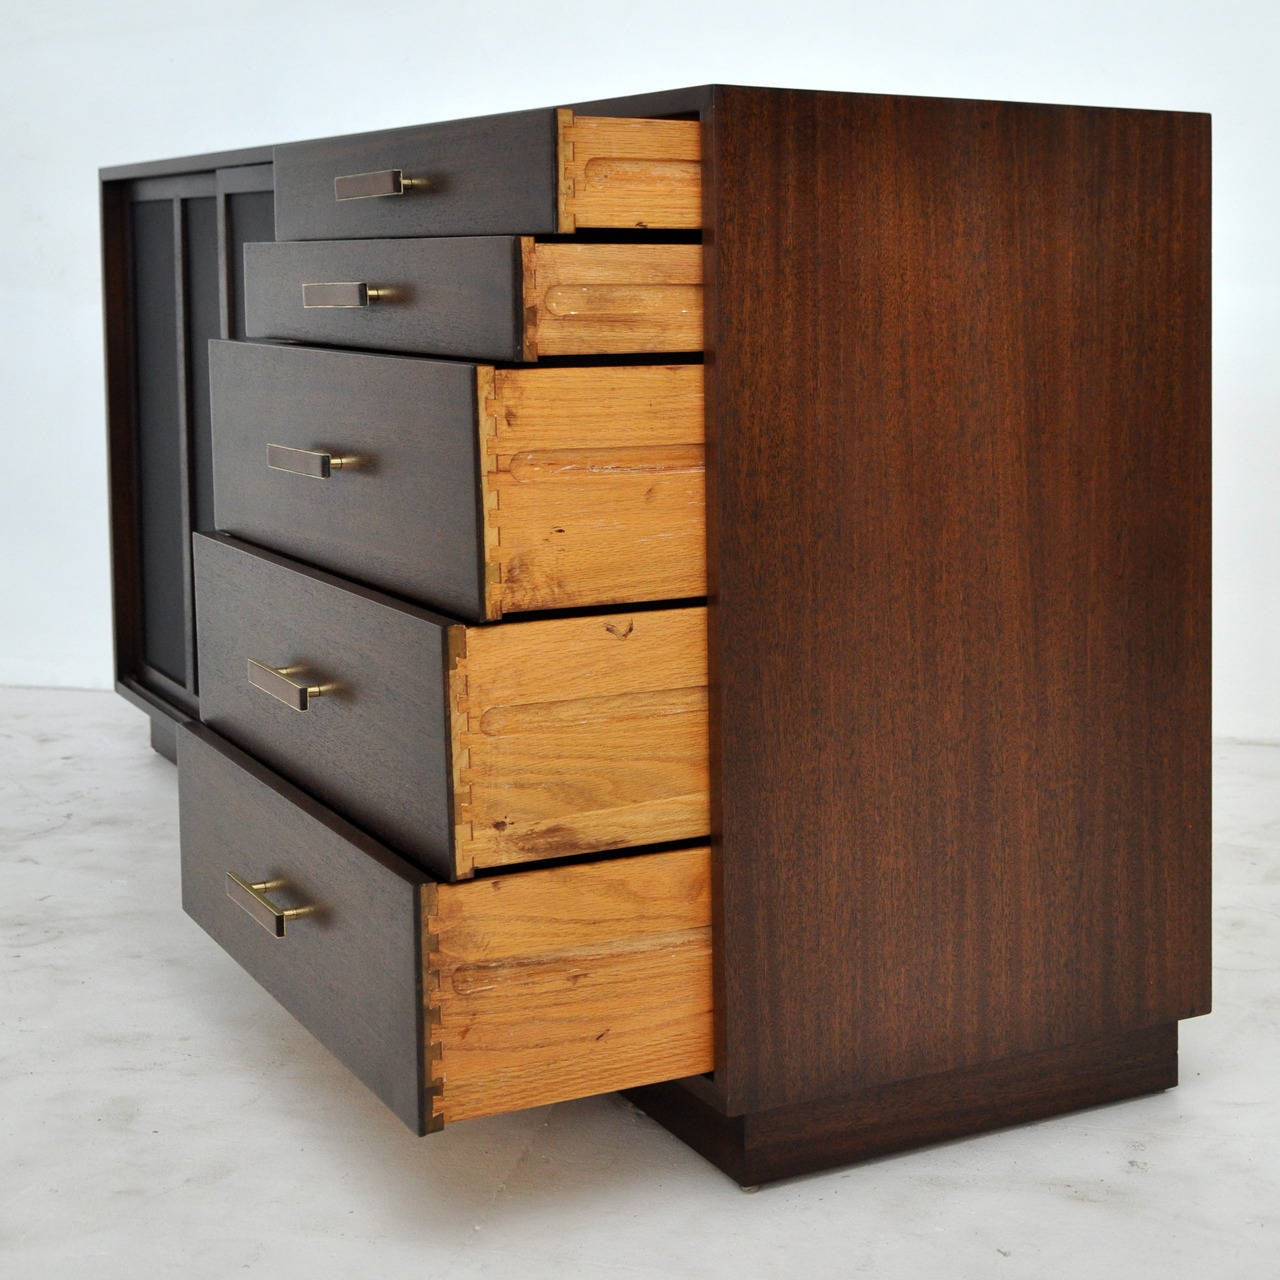 1280 #9D672E Harvey Probber Credenza With Leather Doors At 1stdibs save image Harvey Doors 43271280